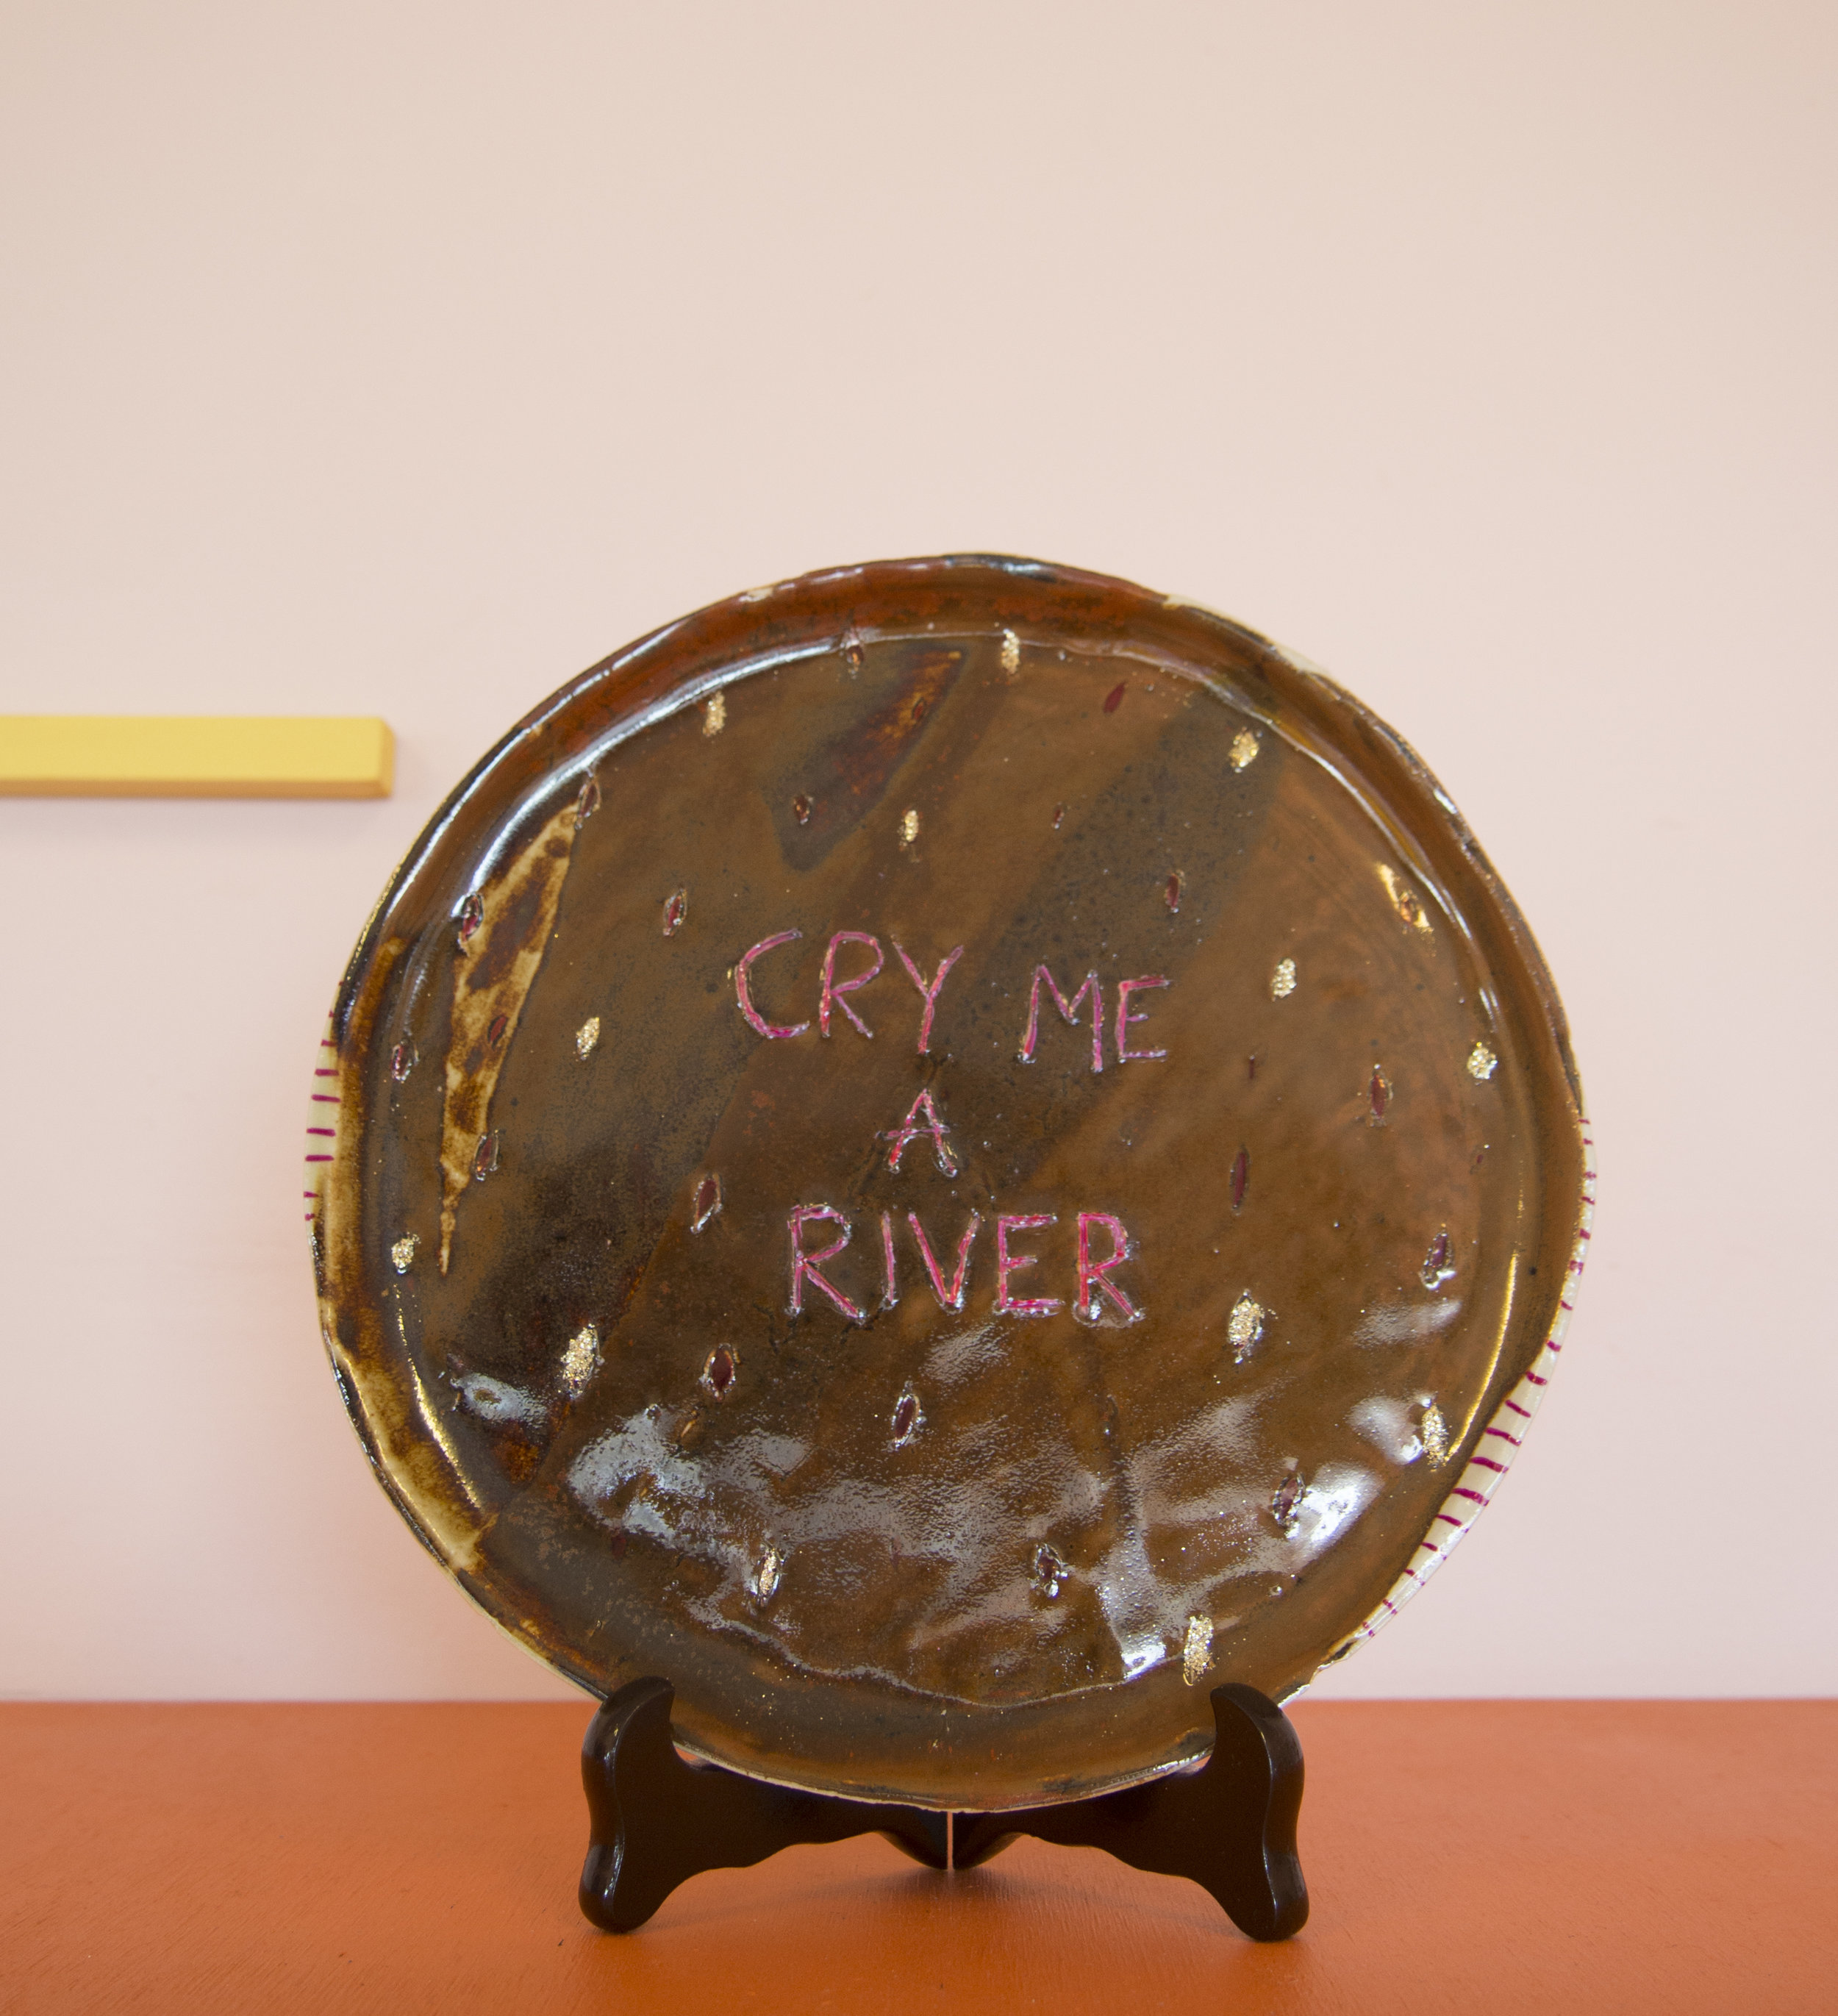 Glitter in the Room    Molly Cook   earthenware, texta, glitter, acrylic paint